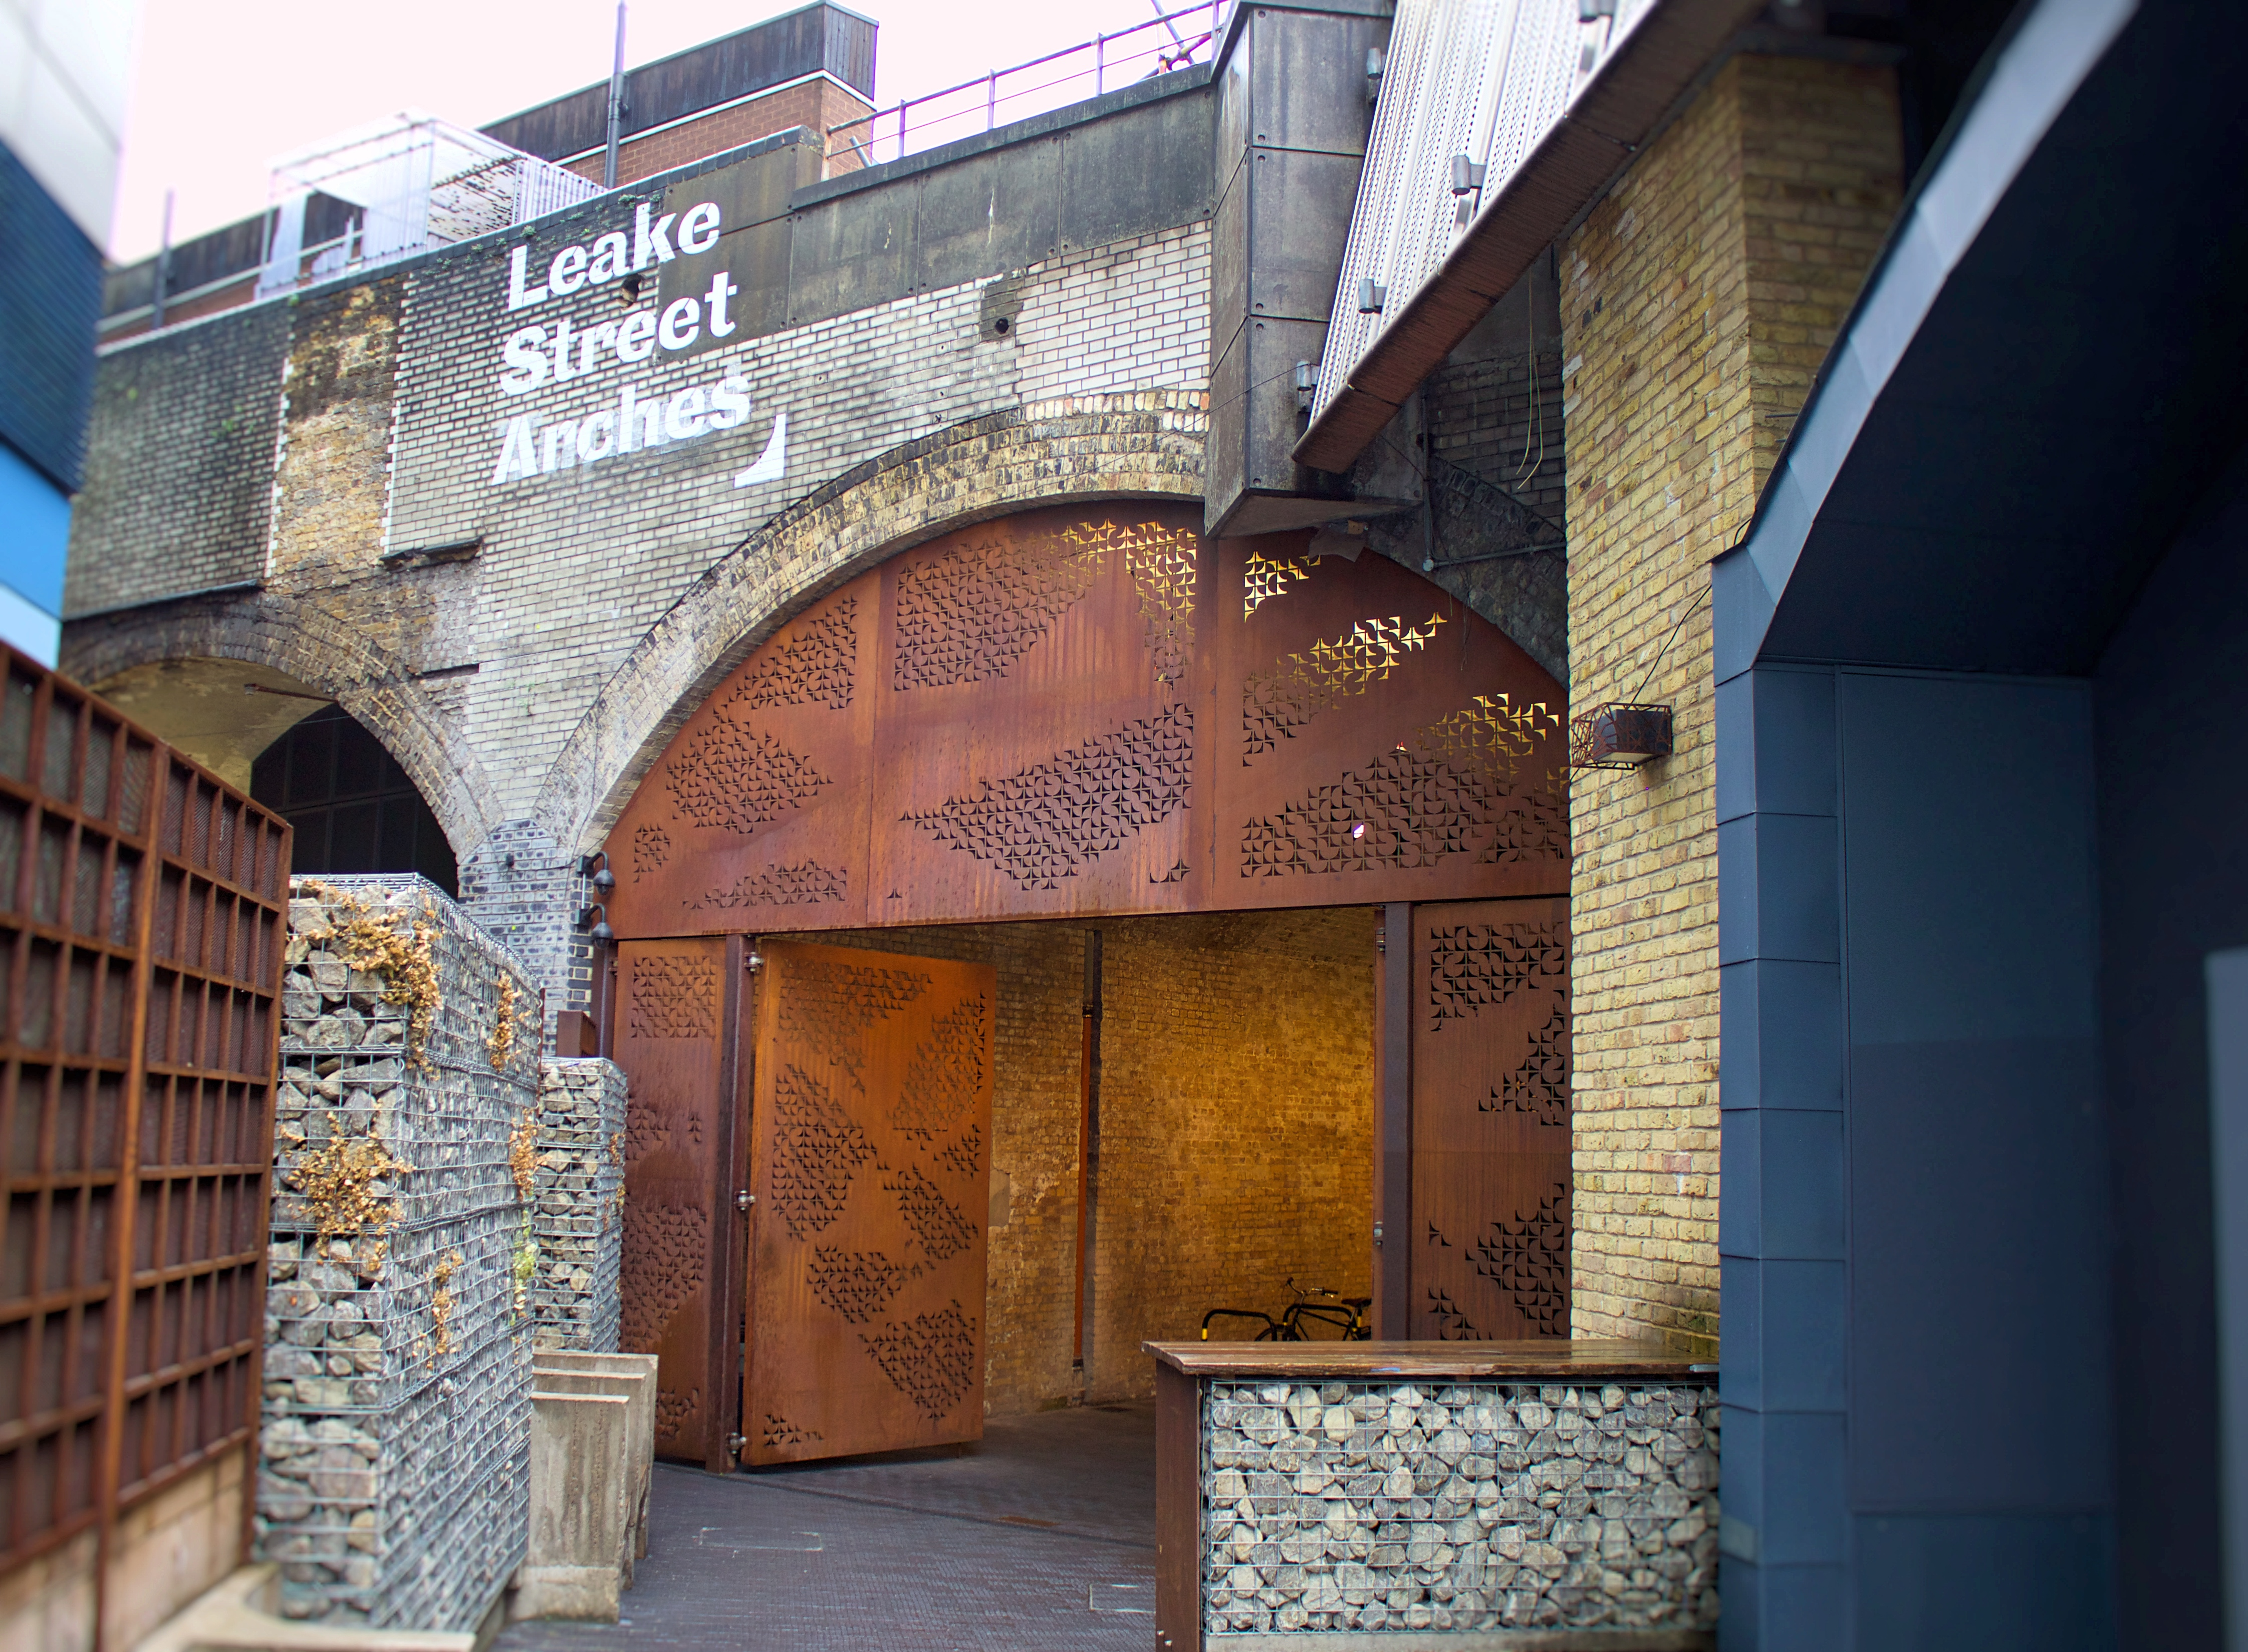 Entrance to the Leake Street Vaults, Westminster Bridge Road